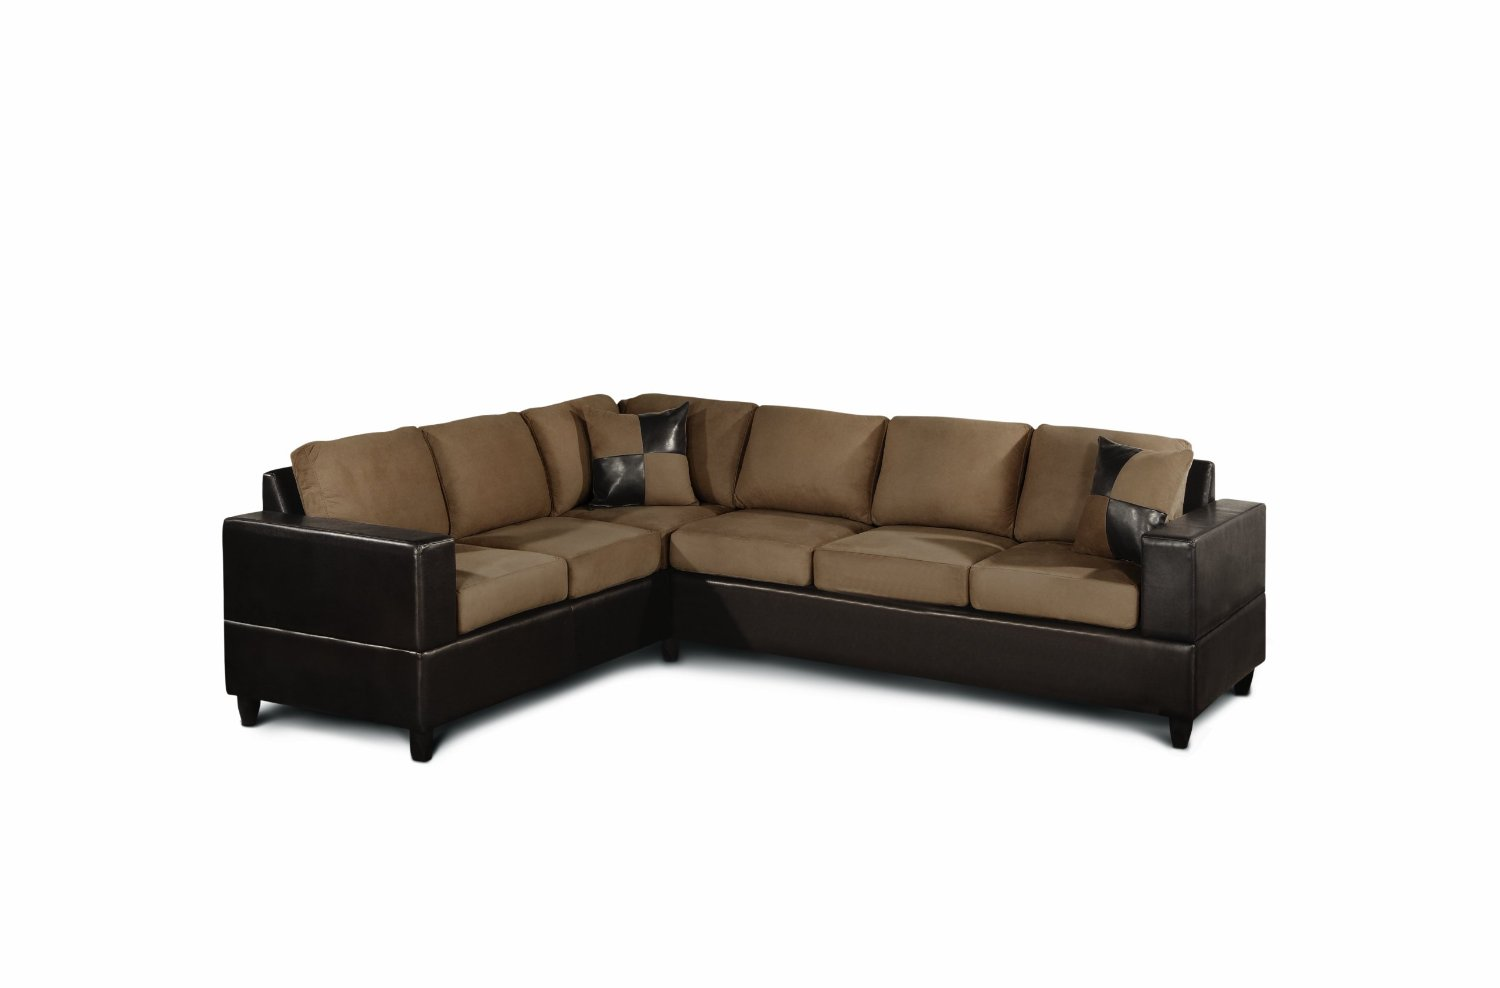 small sofas for rooms uk velvet chesterfield sofa suppliers l shaped  couch and ideas interior design